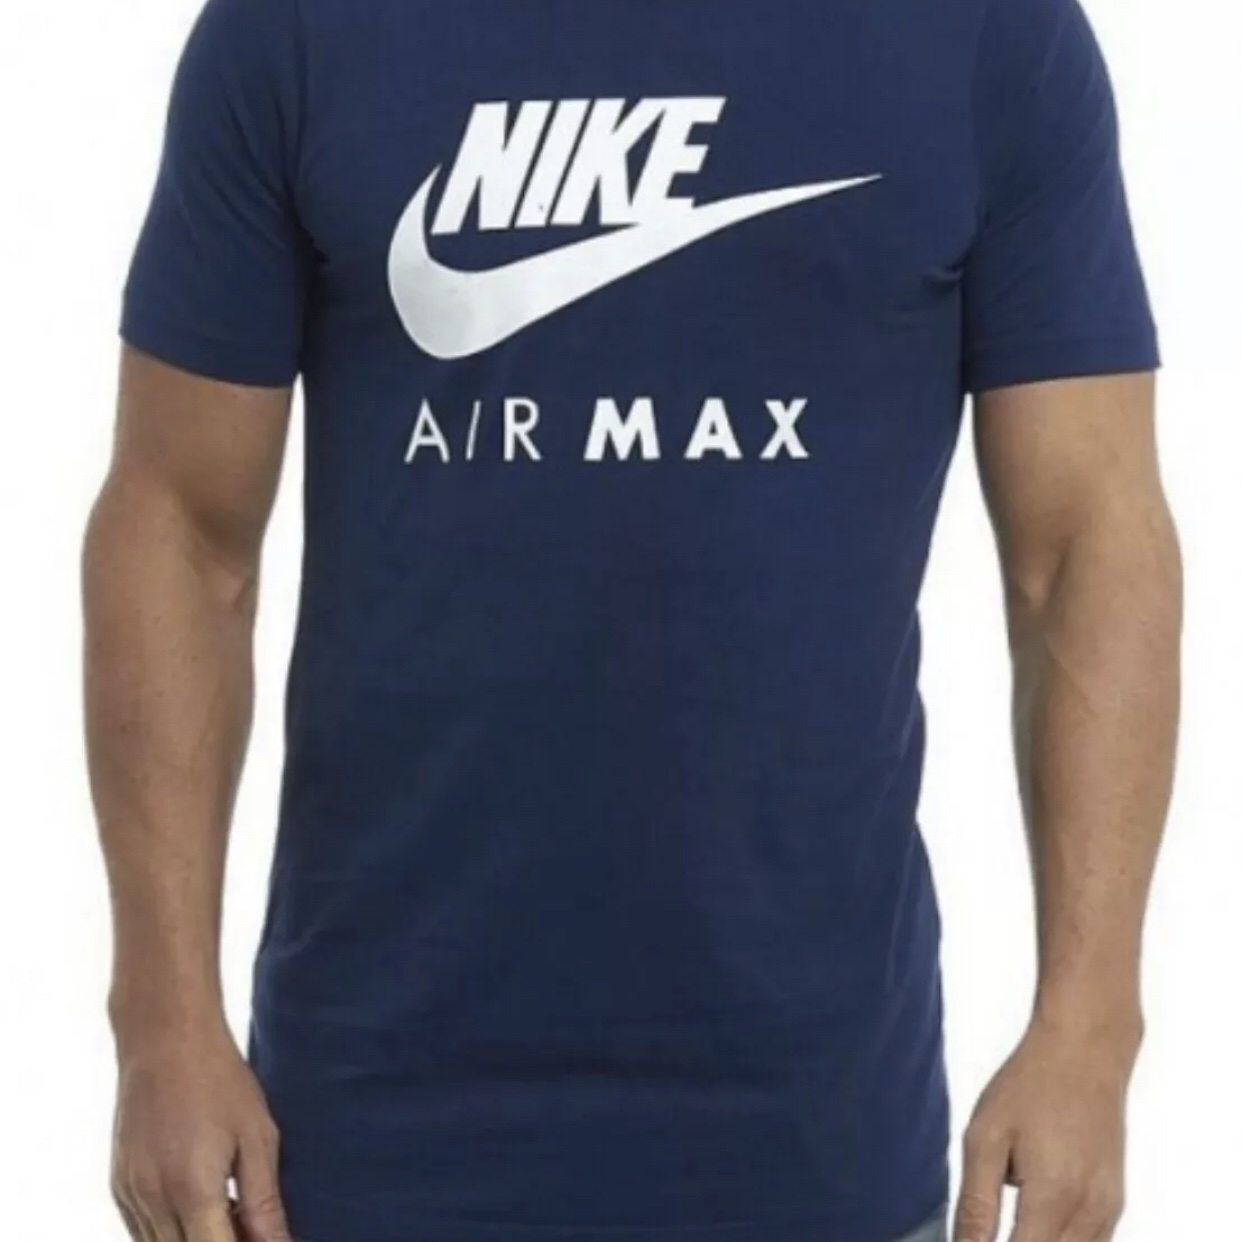 Nike New Men's Air Max Logo Crew Cotton T Shirt Tee All Size